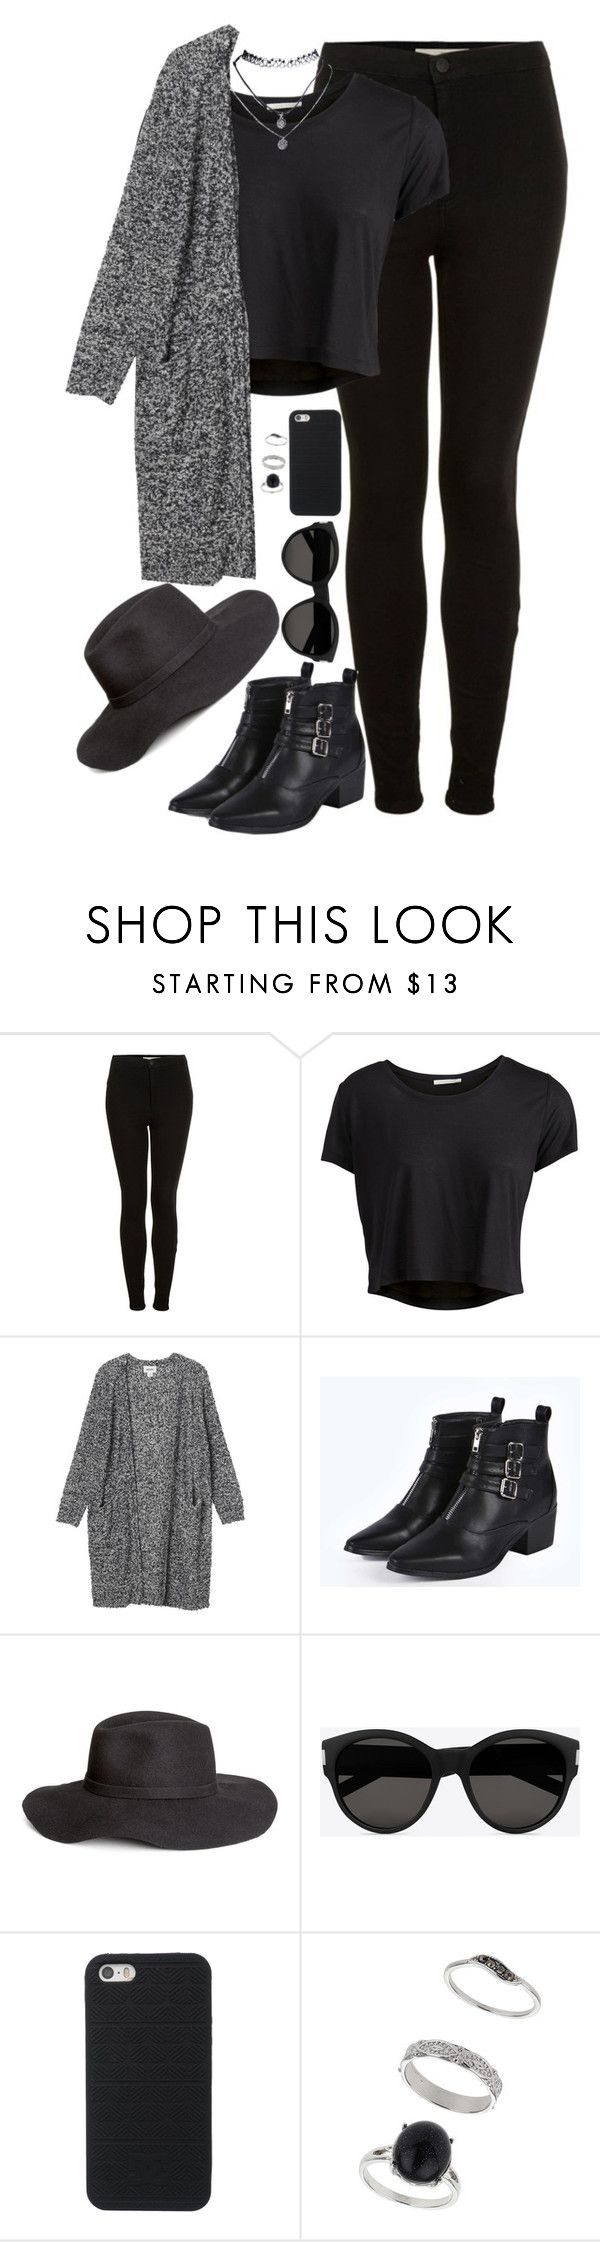 """Black outfit."" by wuryder ❤ liked on Polyvore featuring Topshop, Pieces, Monki, Boohoo, H&M, Yves Saint Laurent, Miss Selfridge, Wet Seal, outfit and allblack"